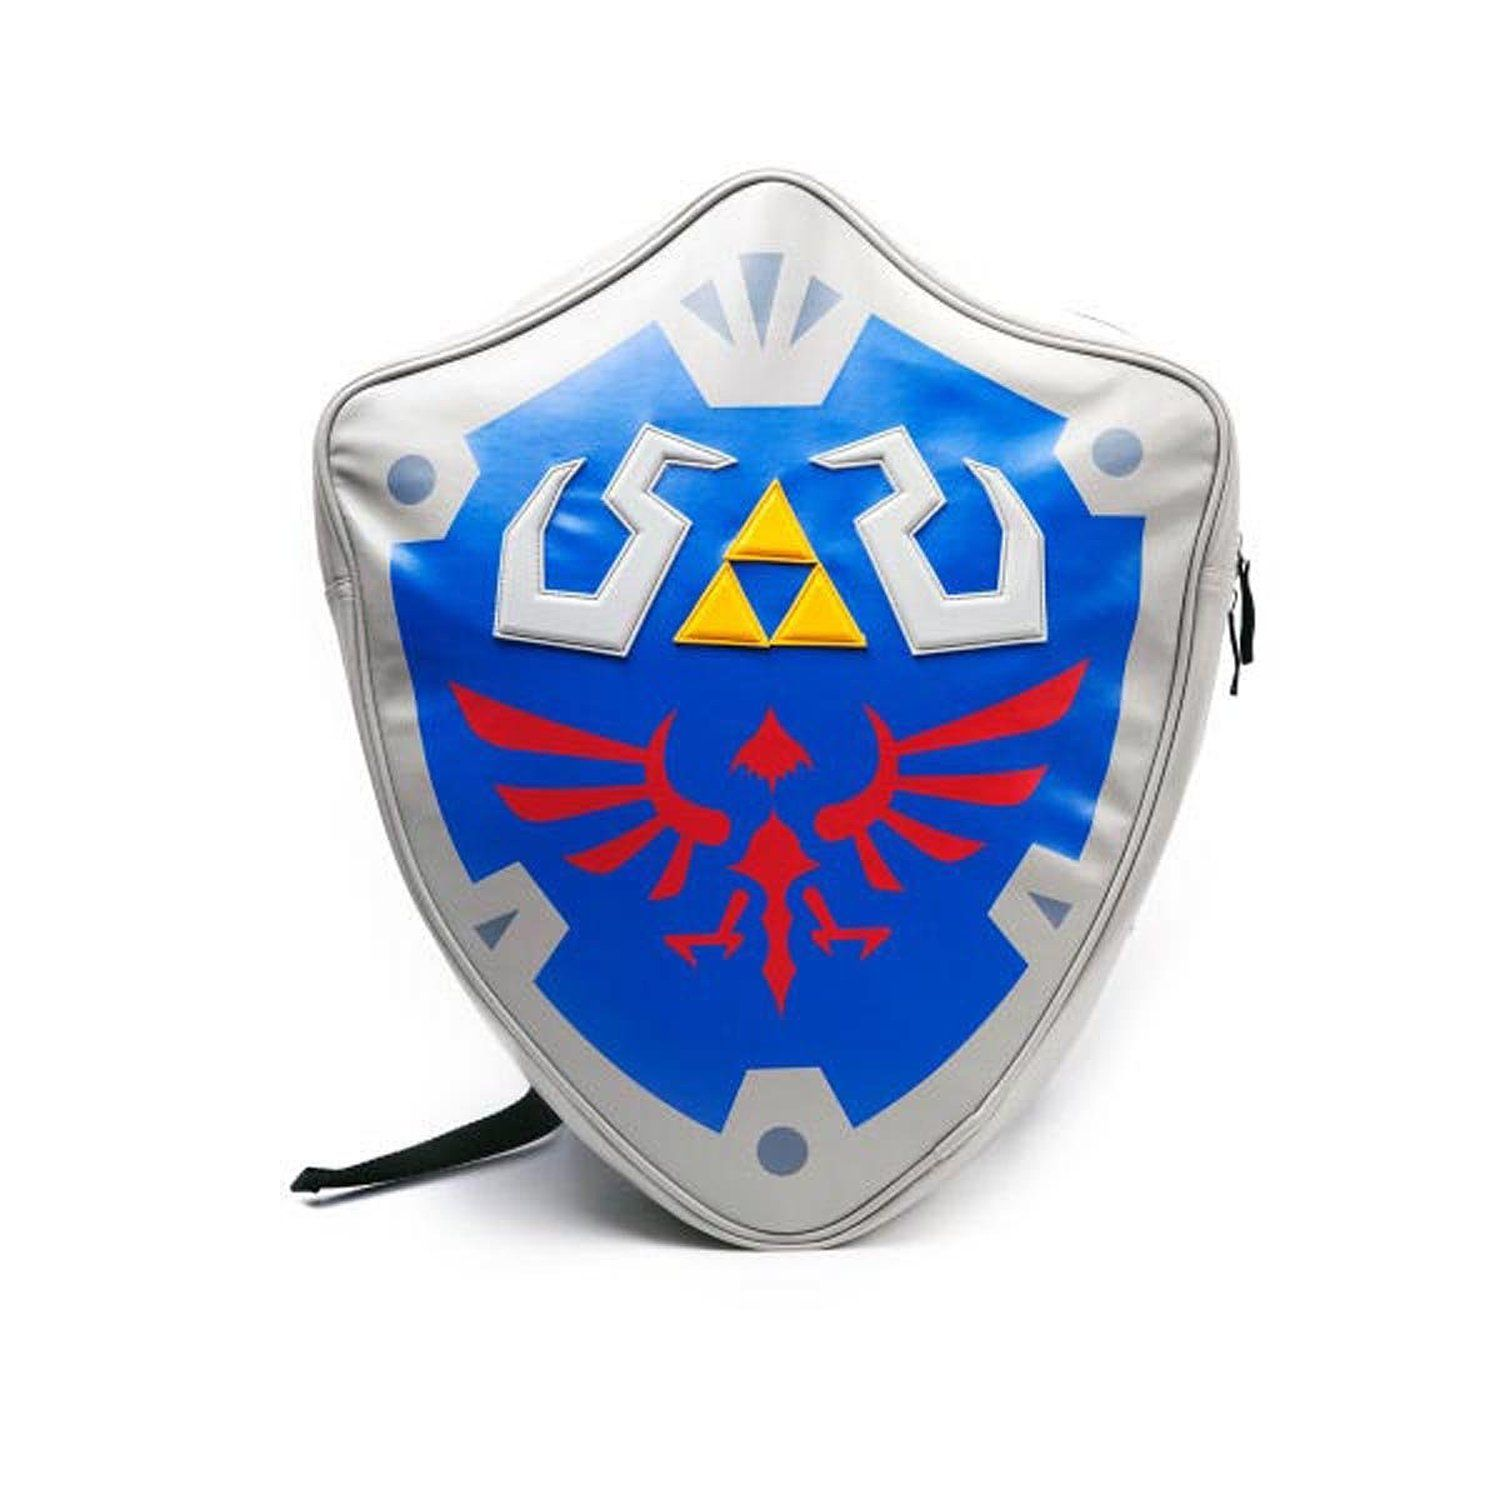 Legend of Zelda Luggage Tag Shield Design bag